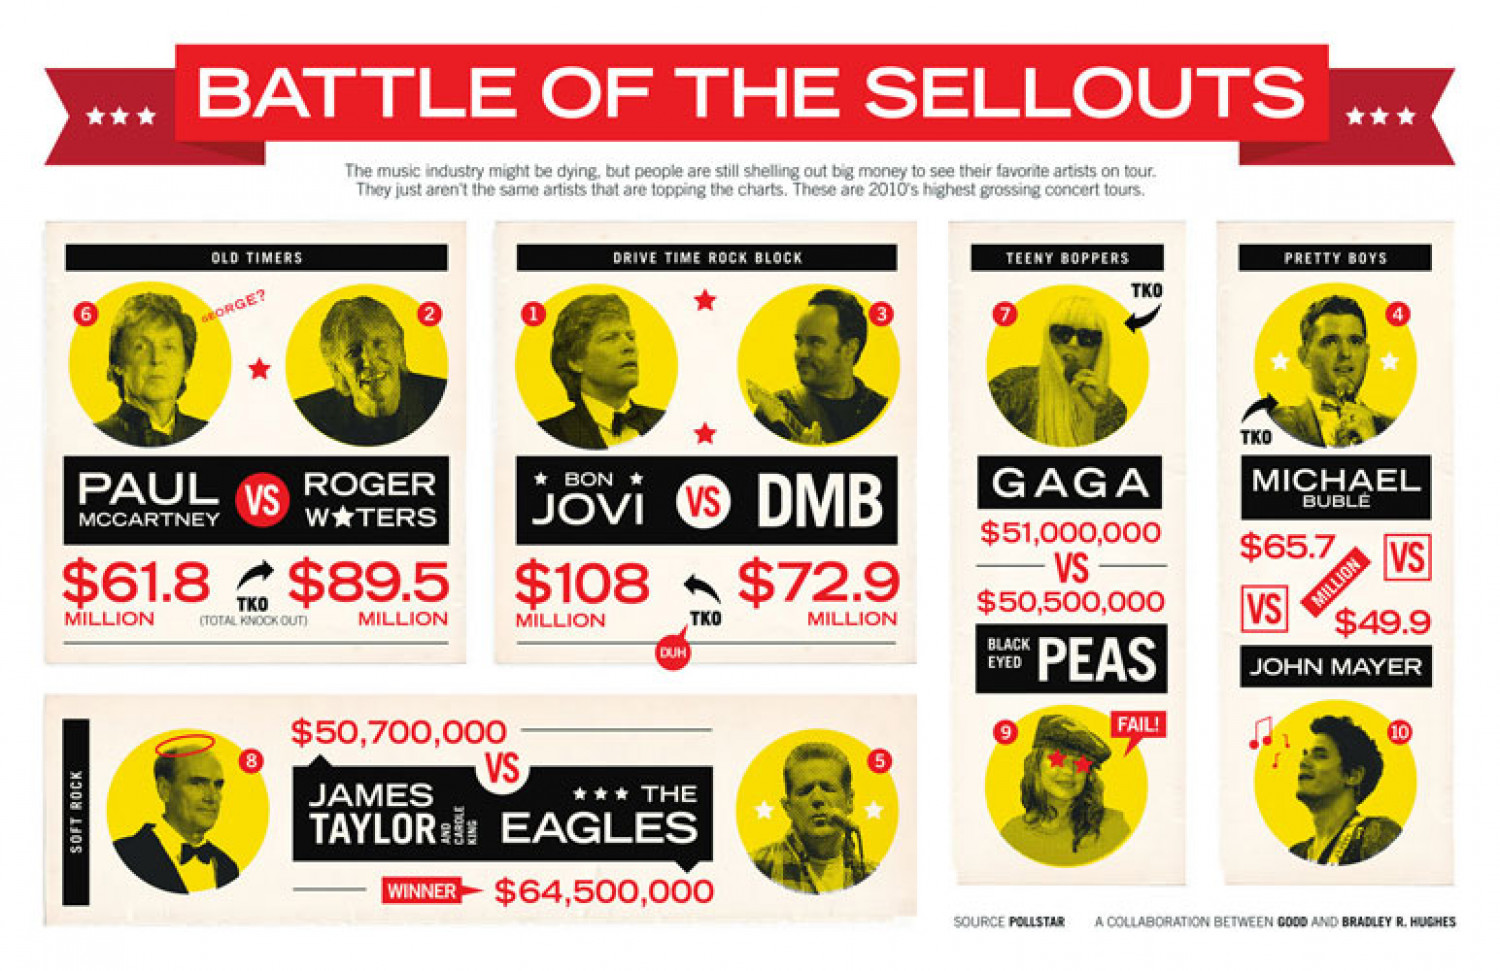 Battle of the Sellouts  Infographic